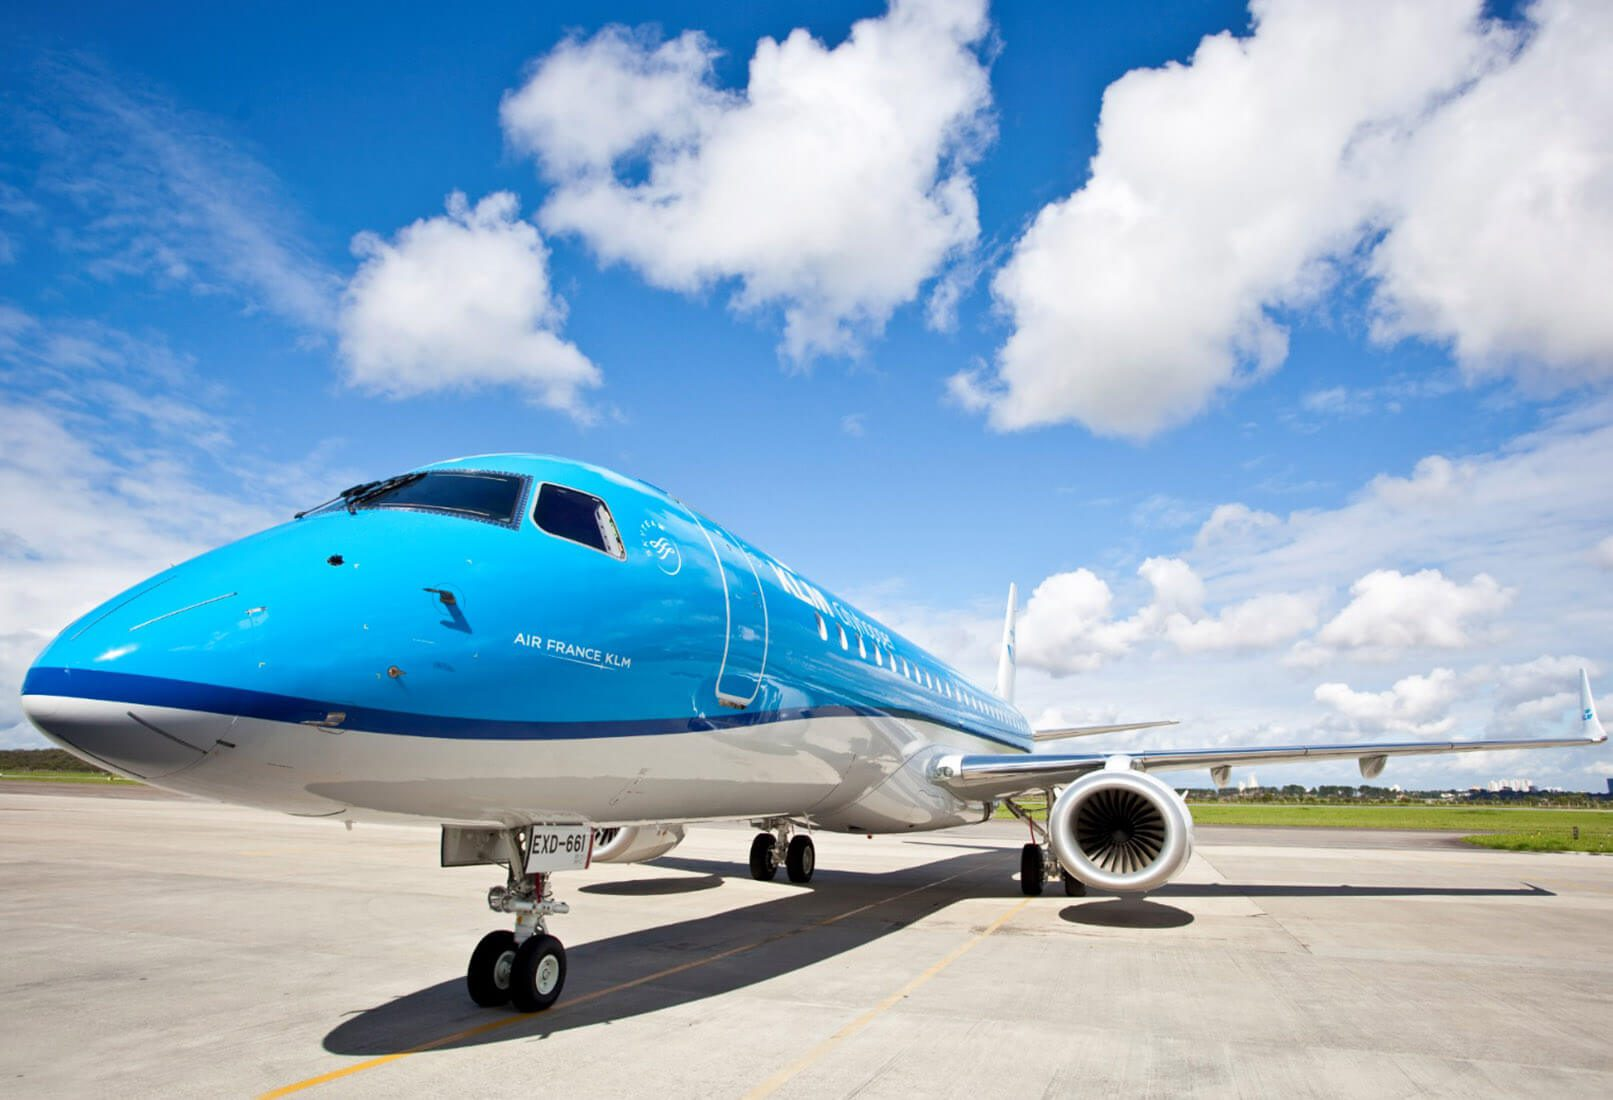 KLM Cityhopper agree to lease extensions on 6 aircraft